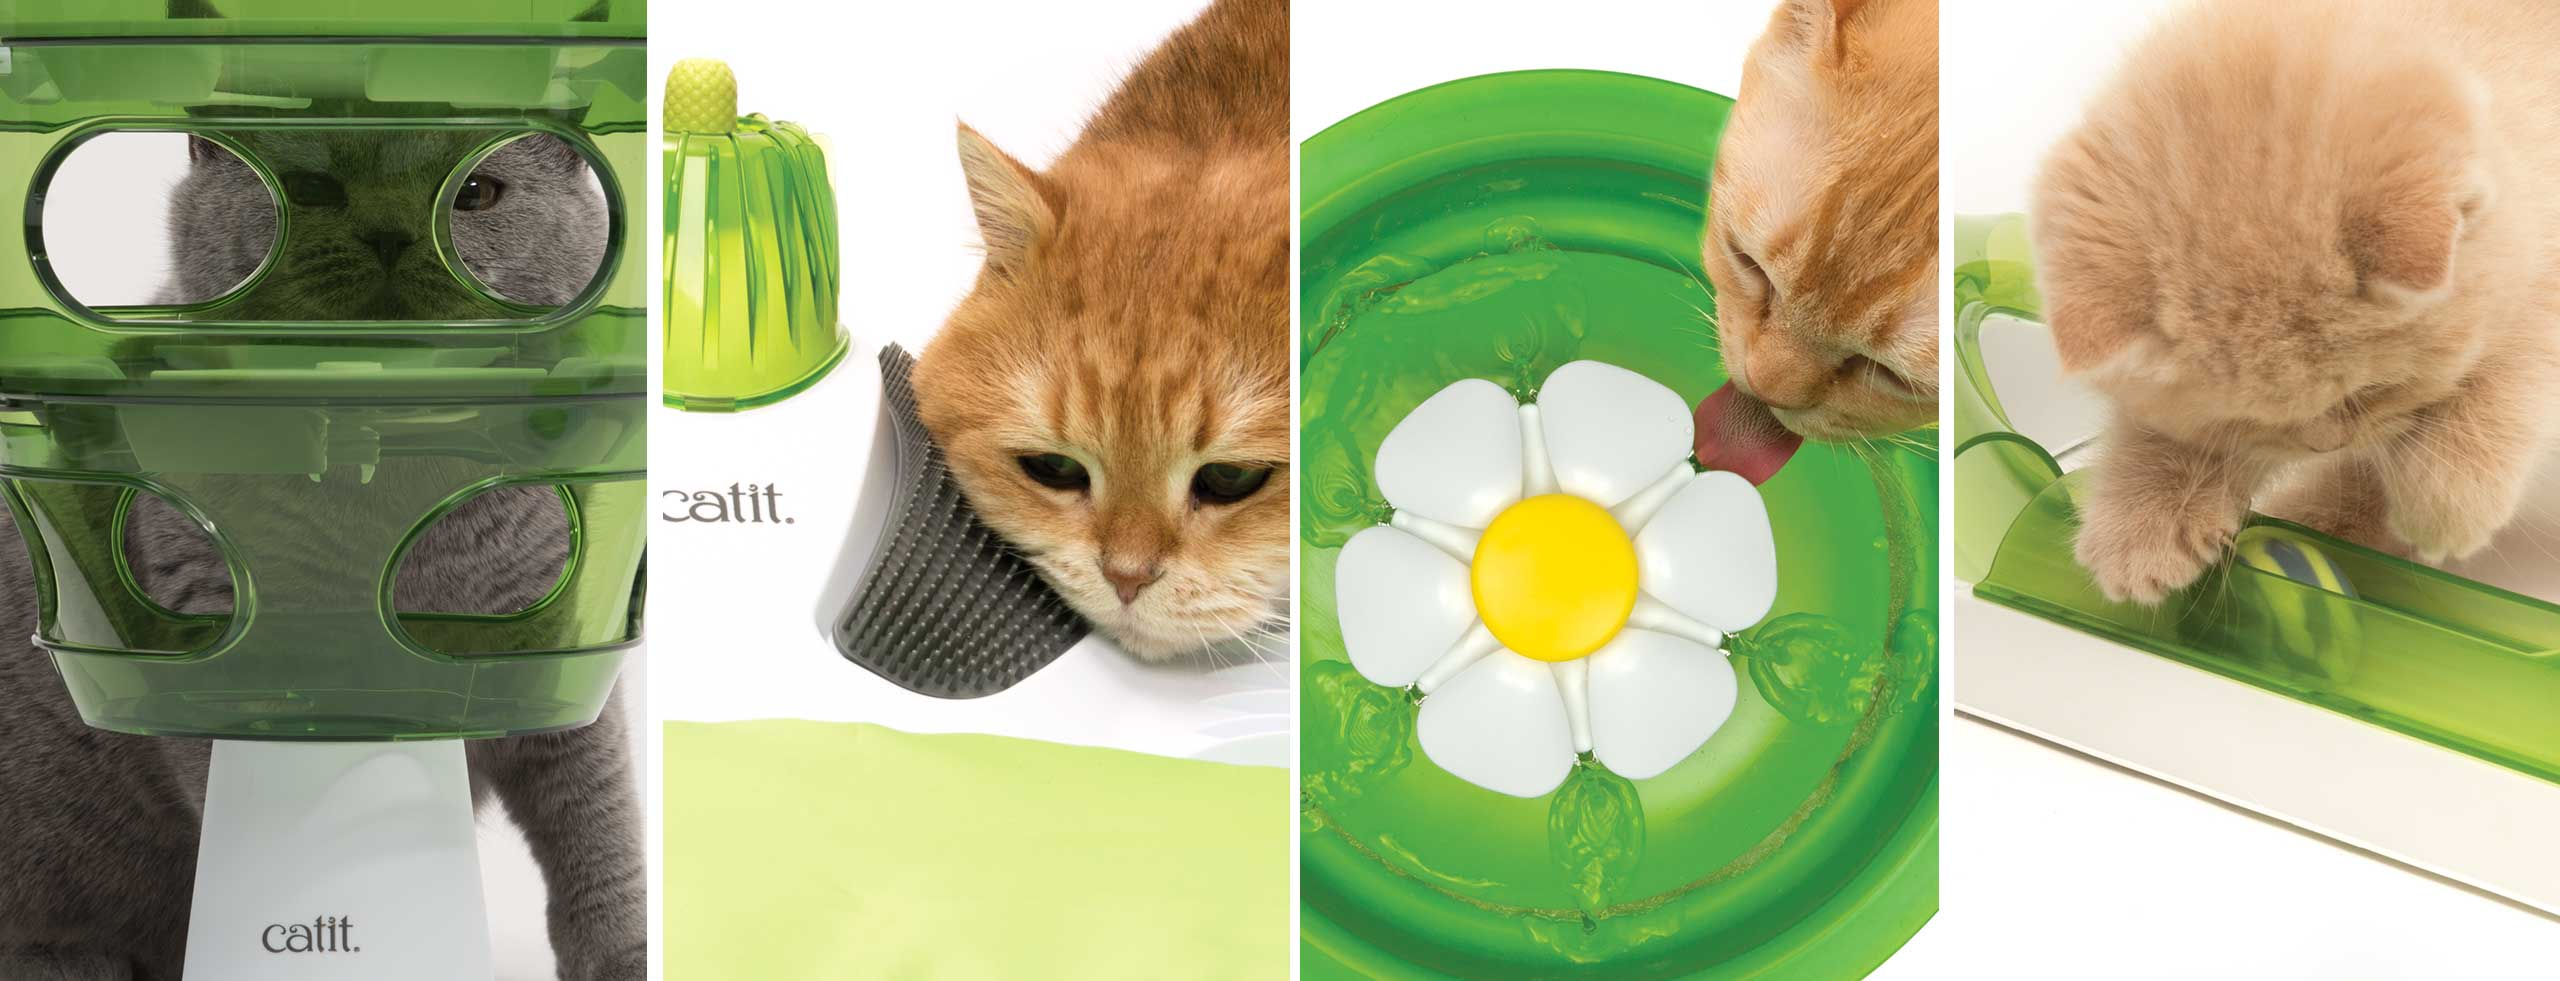 Different images of cats using catit products